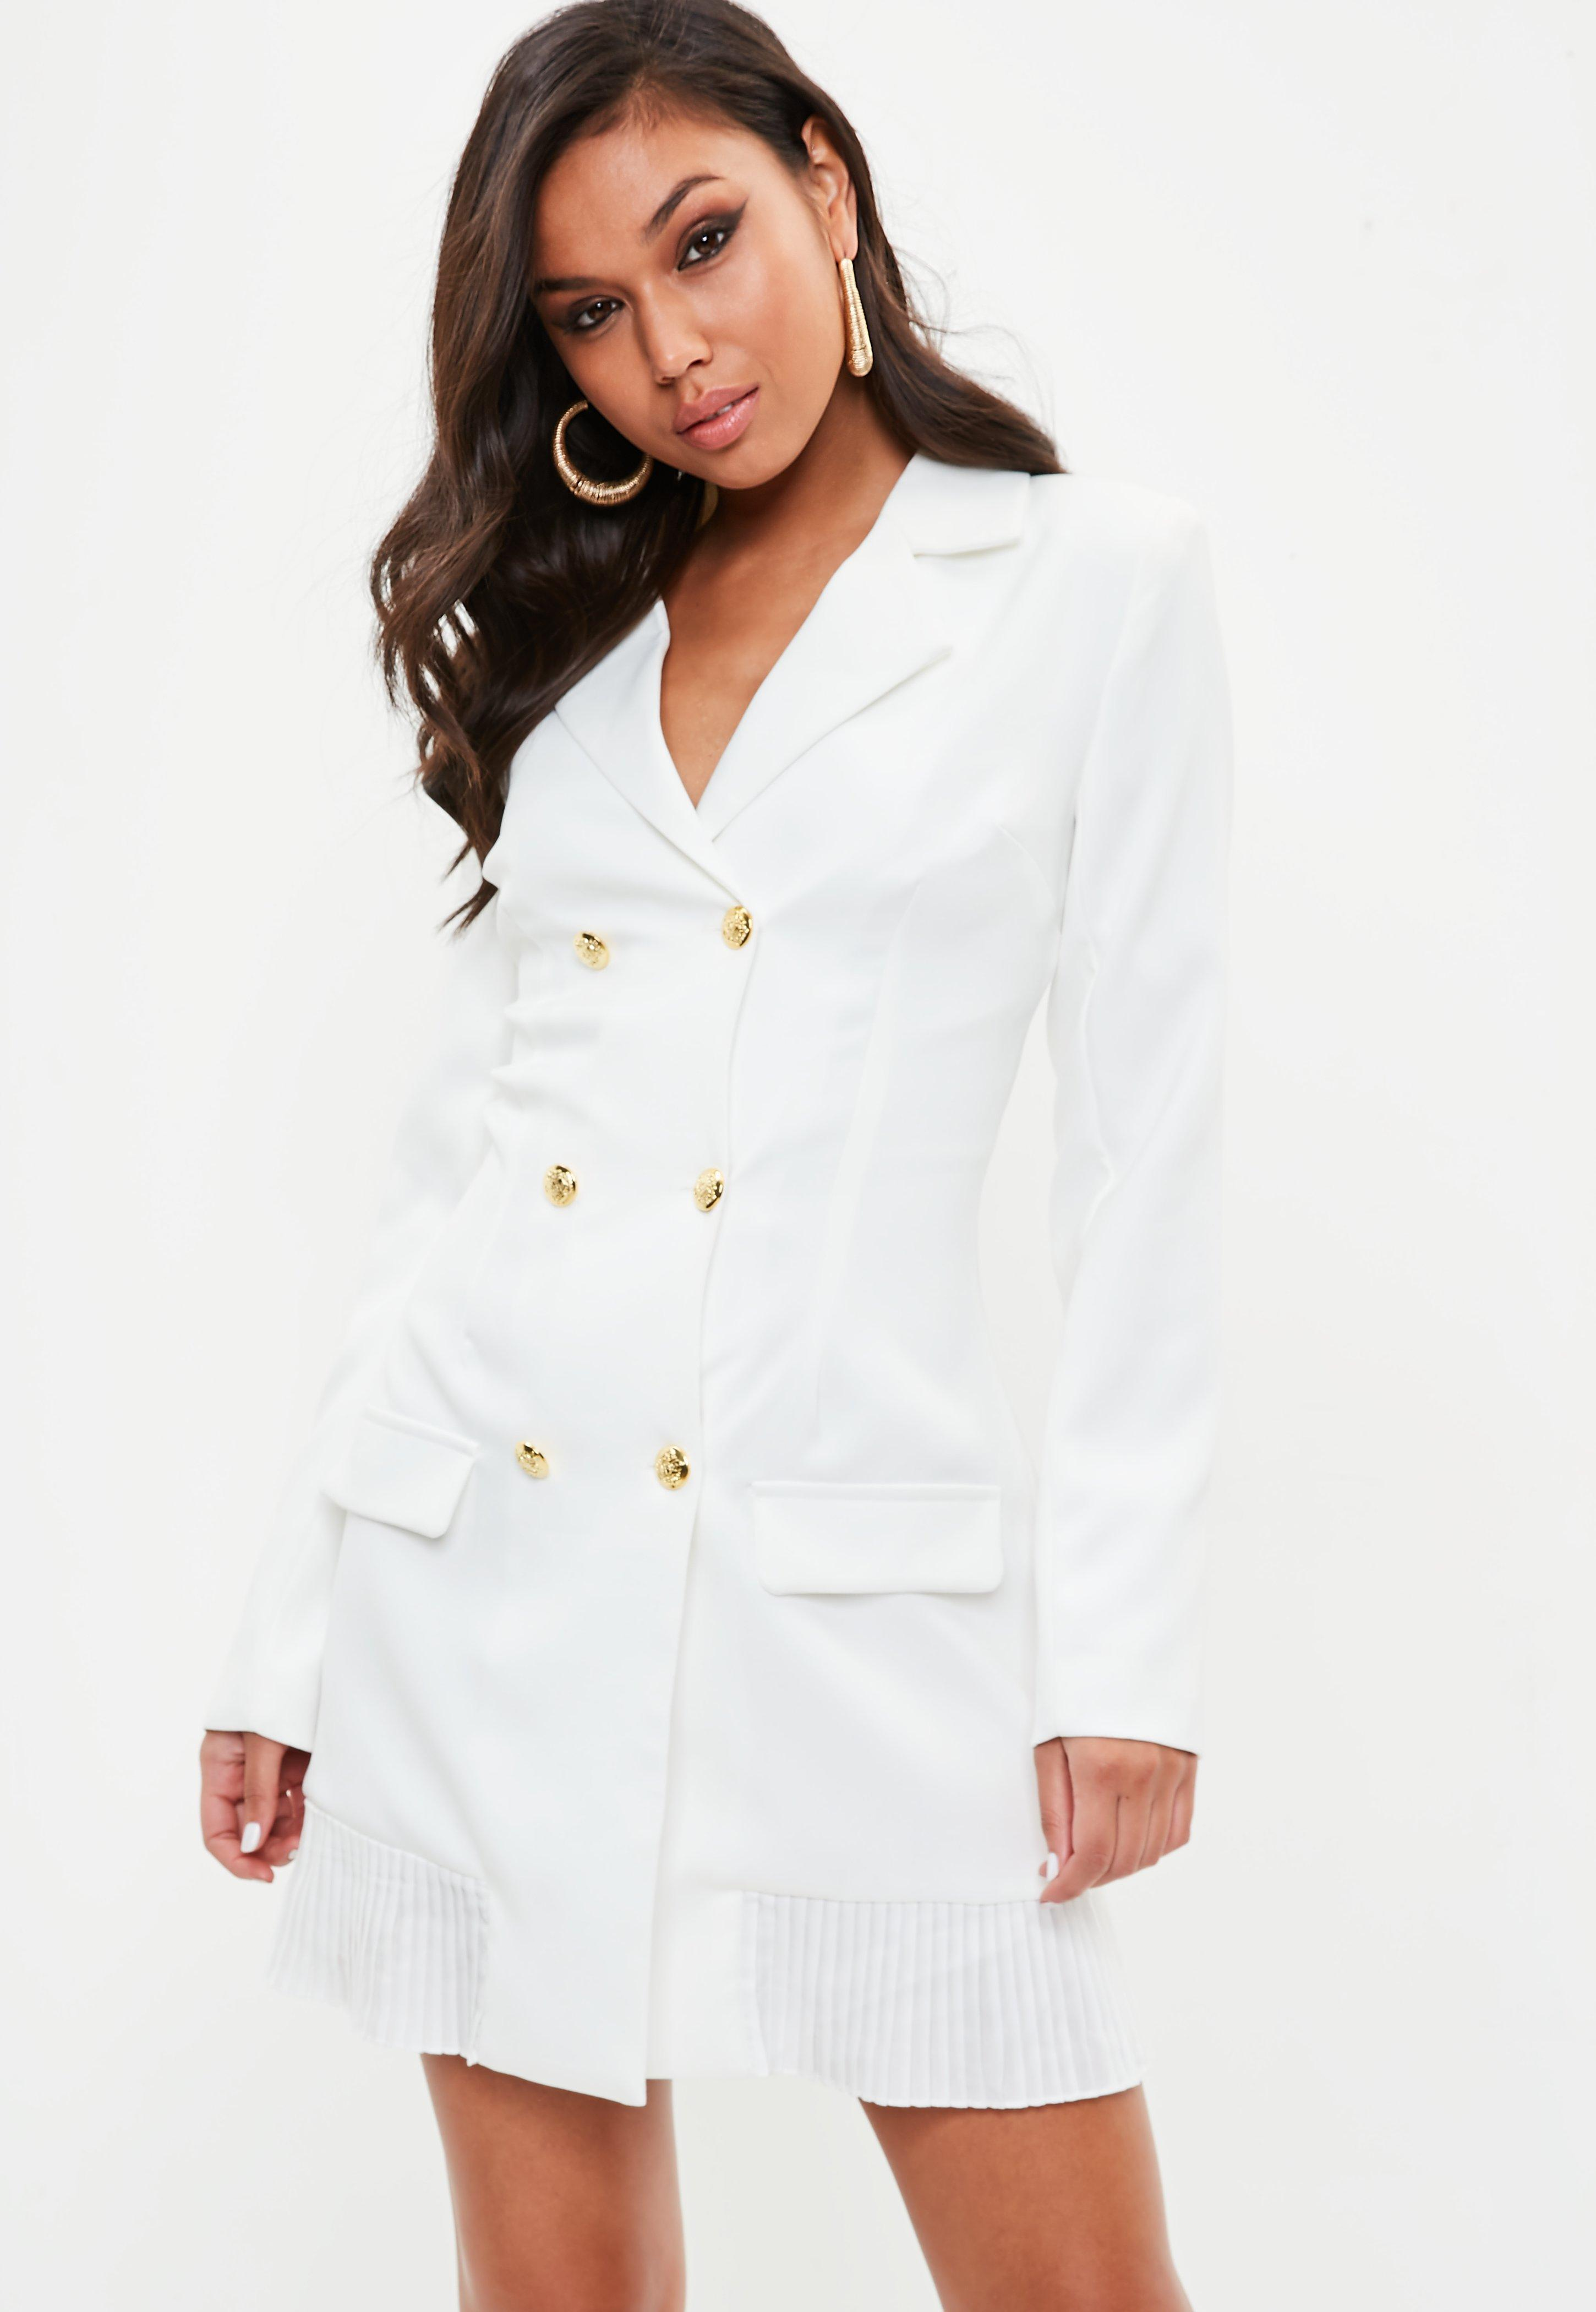 eb3be578211b8a Lyst - Missguided Tall White Tailored Gold Button Blazer Dress in White